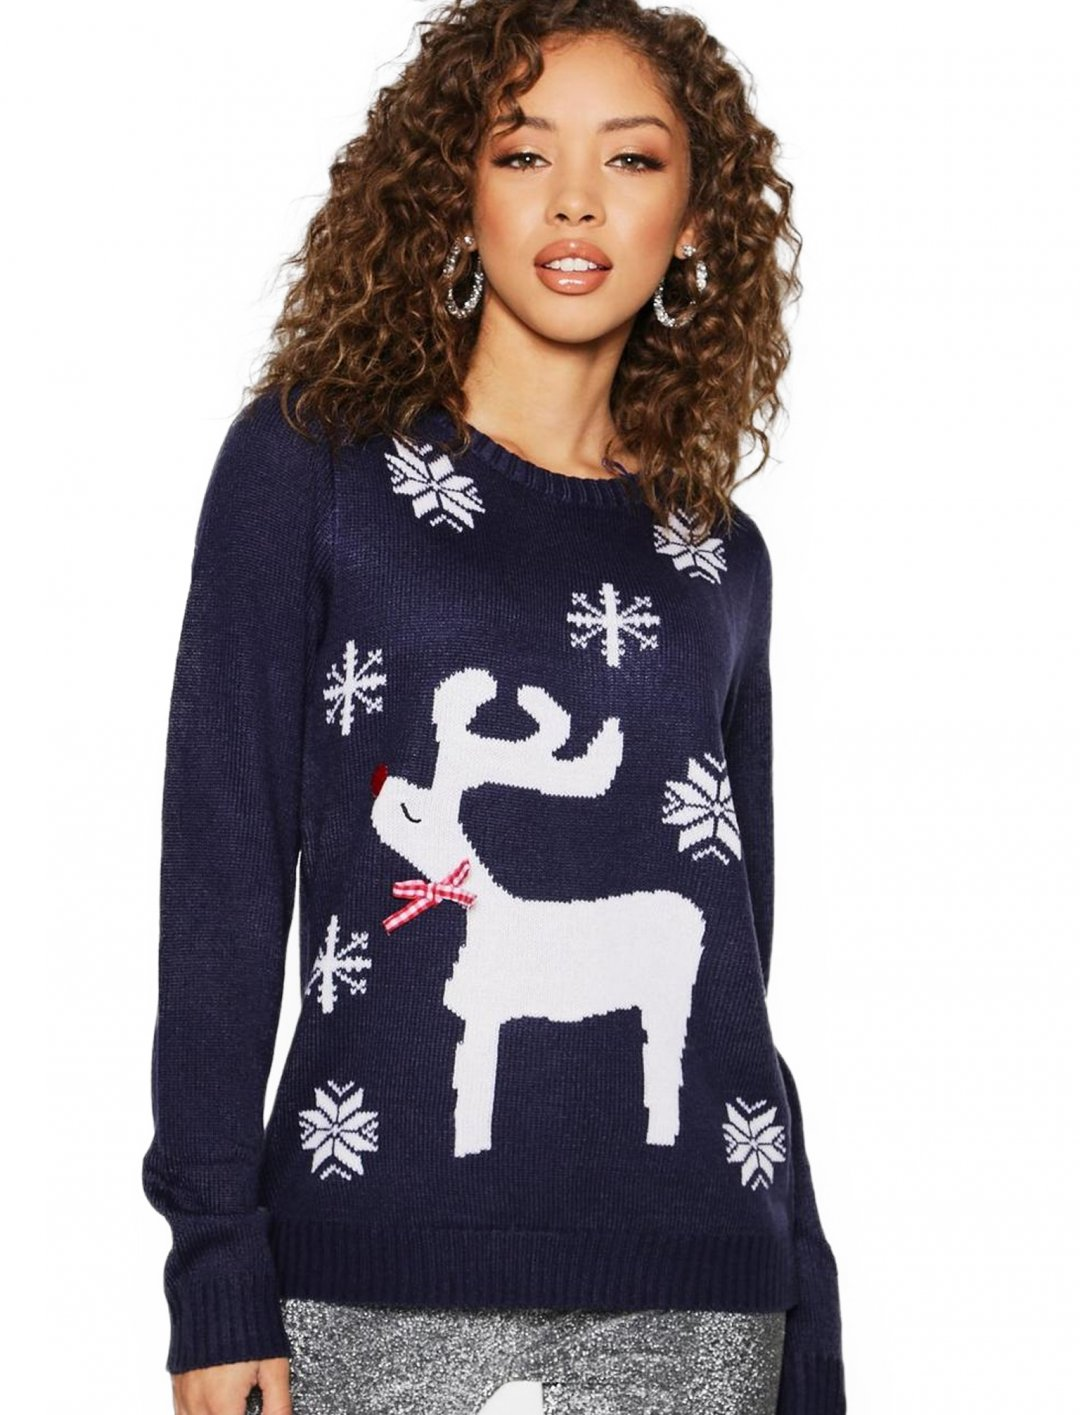 "Christmas Sweater {""id"":5,""product_section_id"":1,""name"":""Clothing"",""order"":5} boohoo"